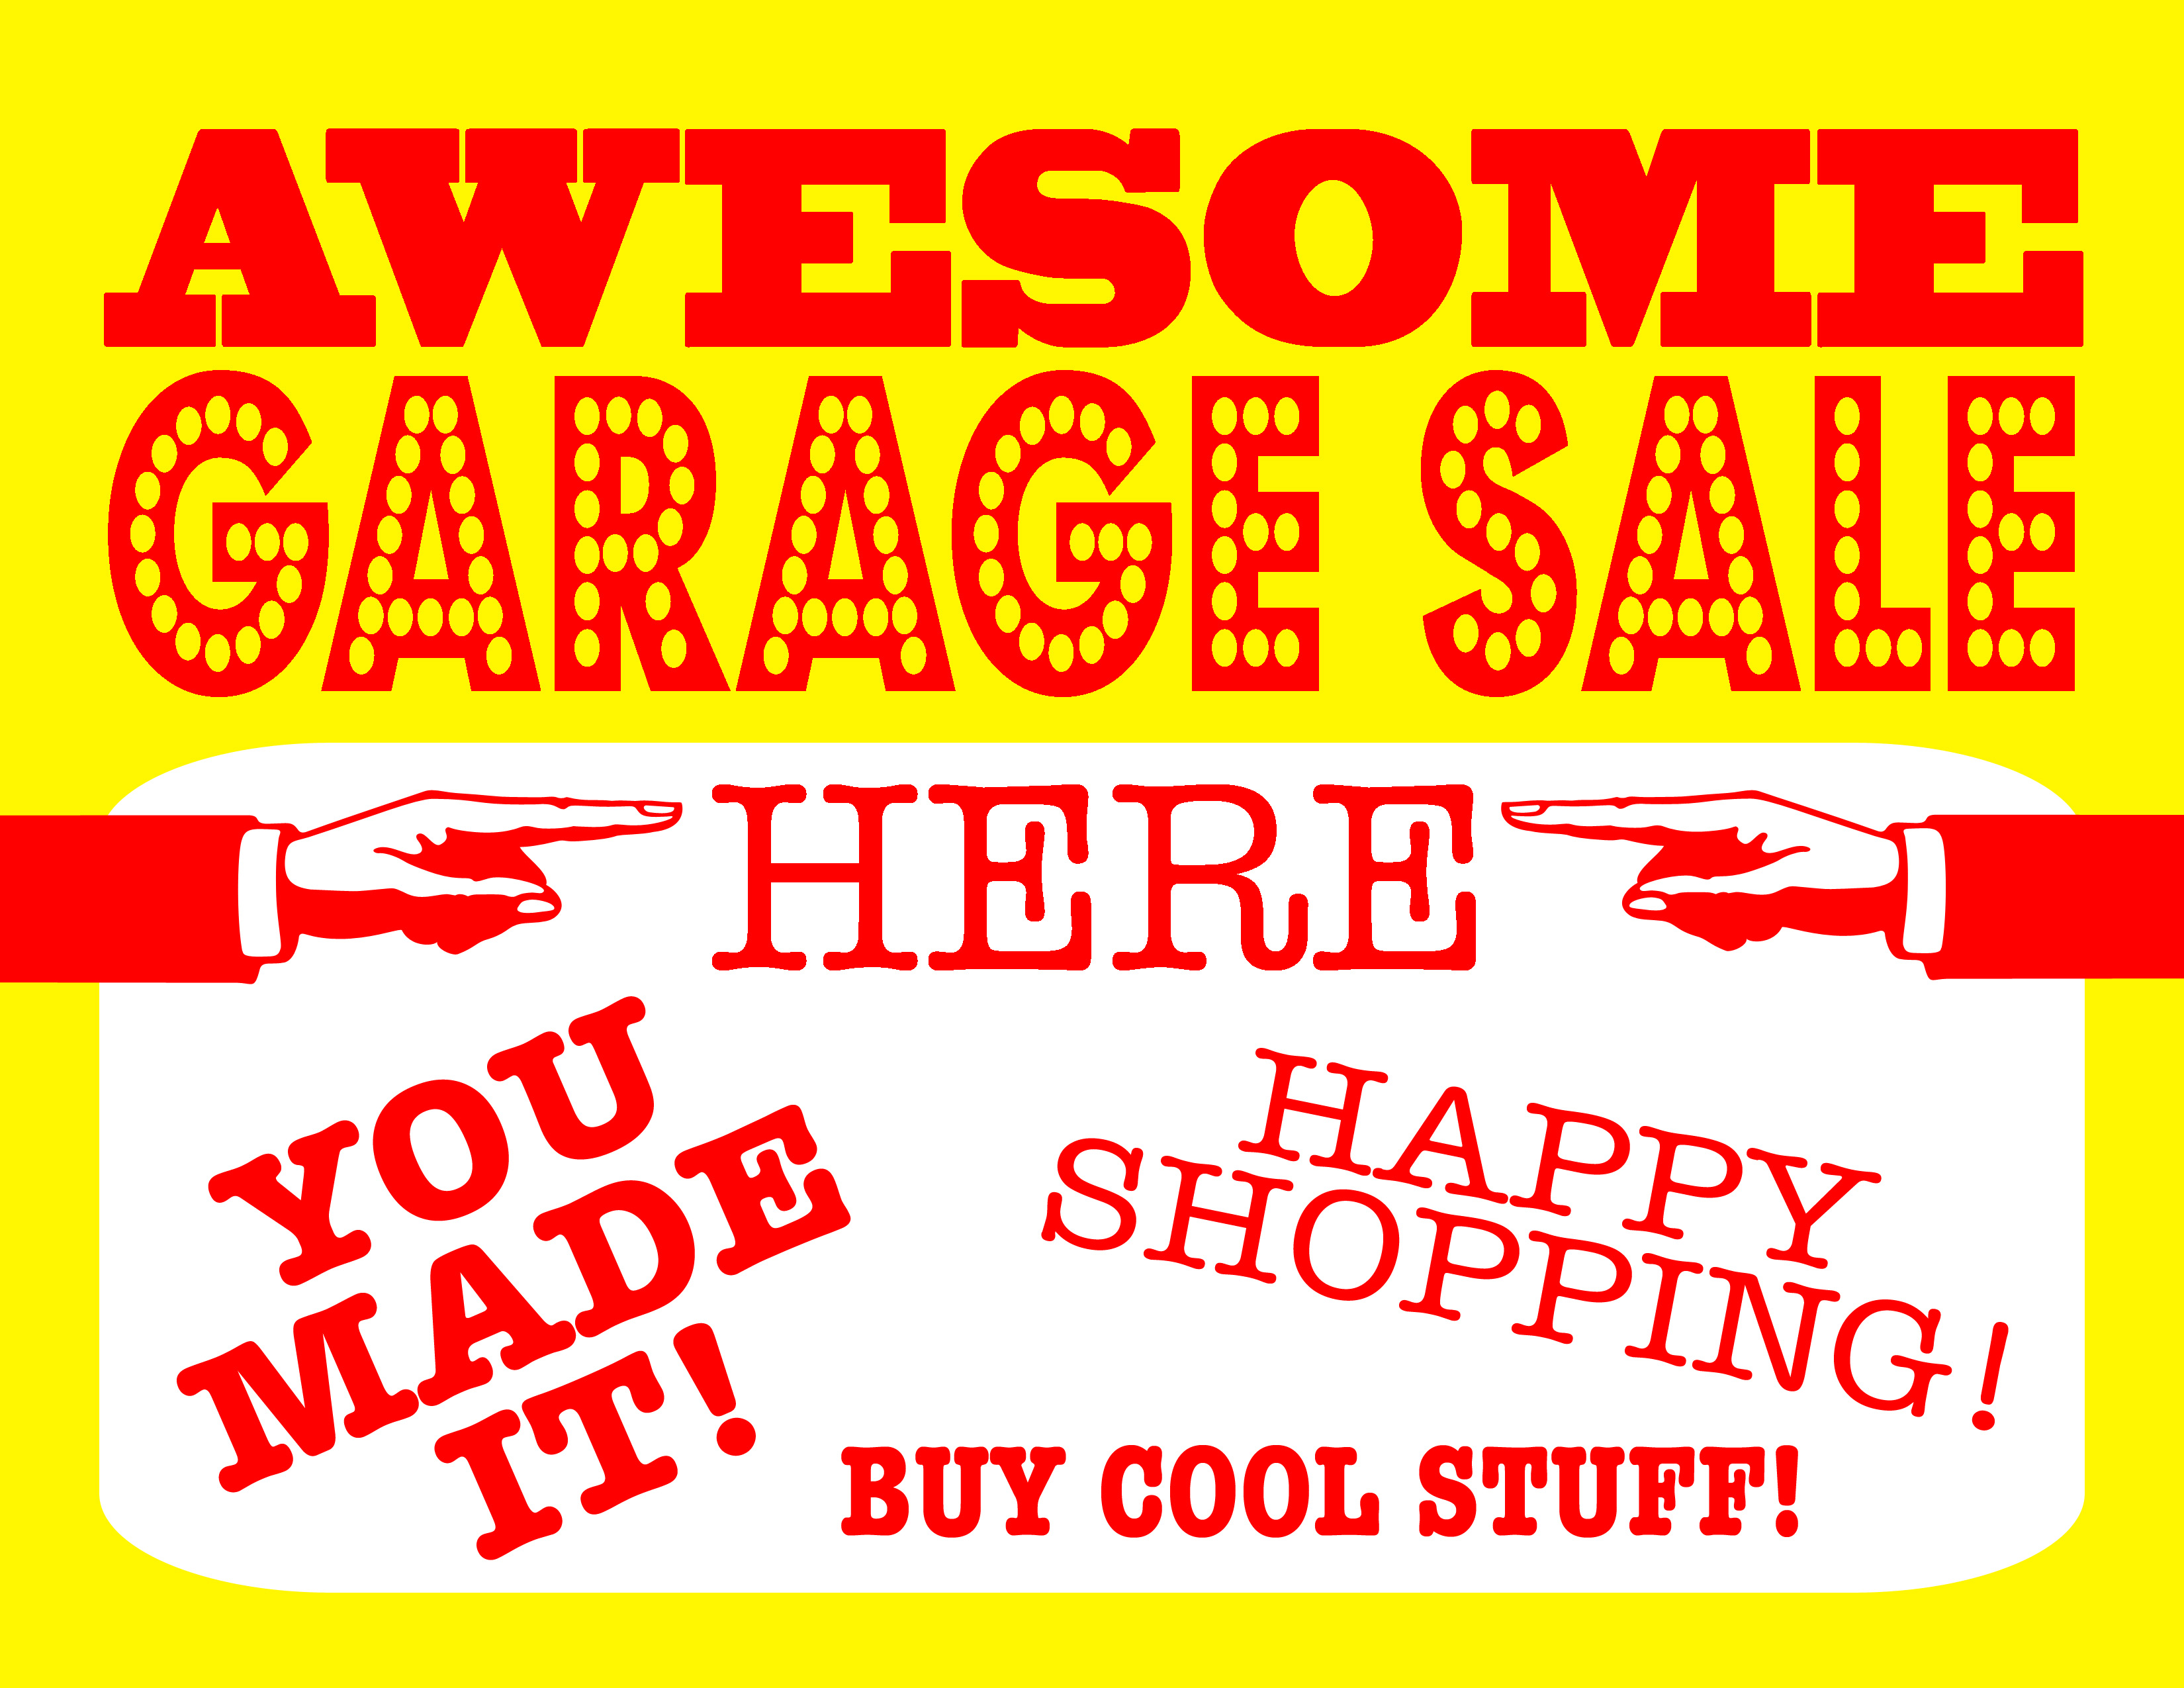 photograph regarding Printable Yard Sale Signs named Do-it-yourself Printable Amazing Garage Sale Signs or symptoms